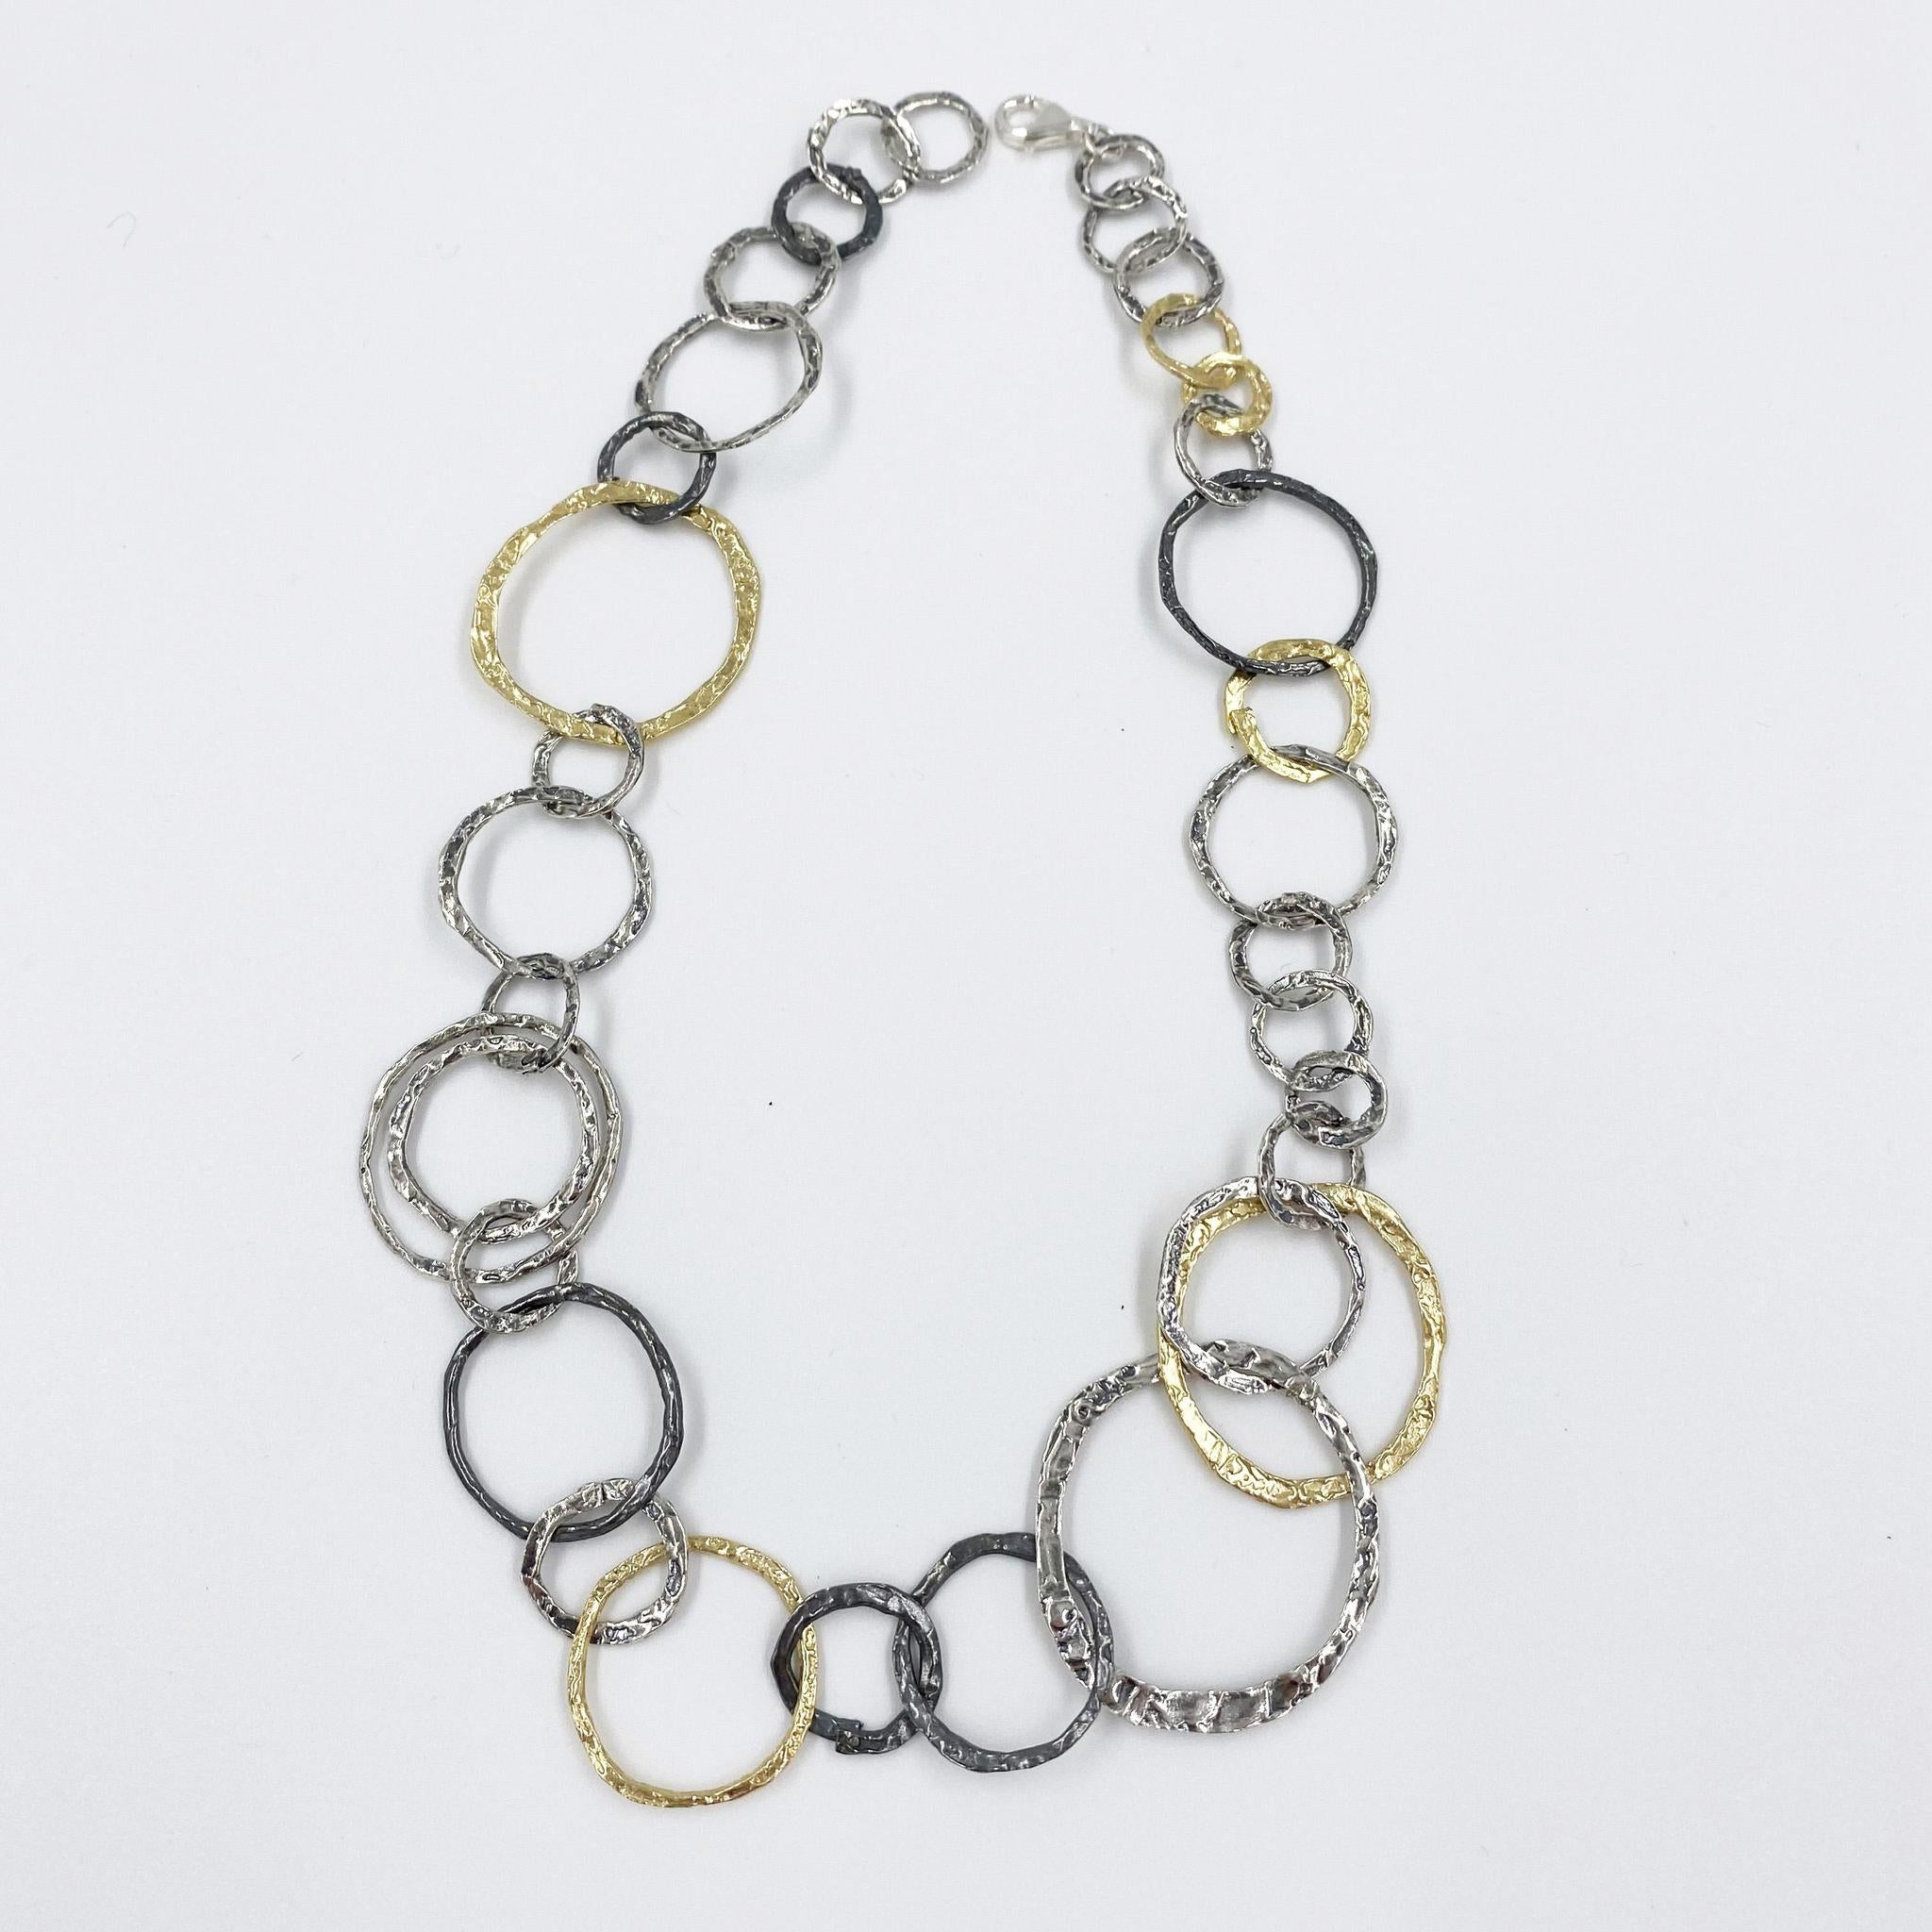 Hoops necklace